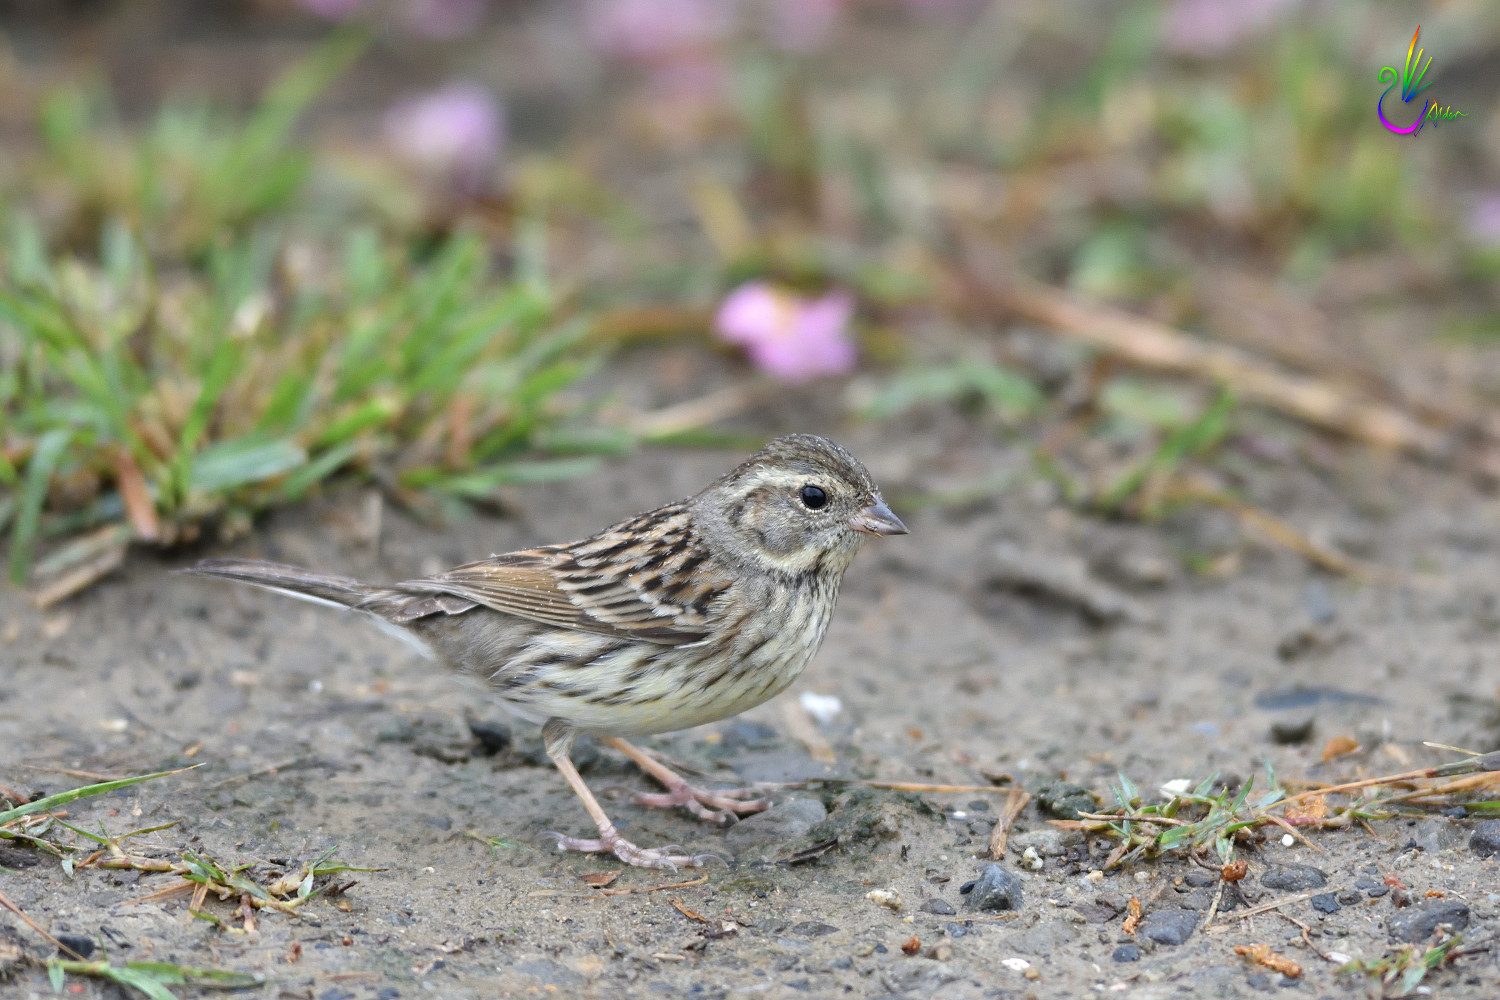 Black-faced_Bunting_7605